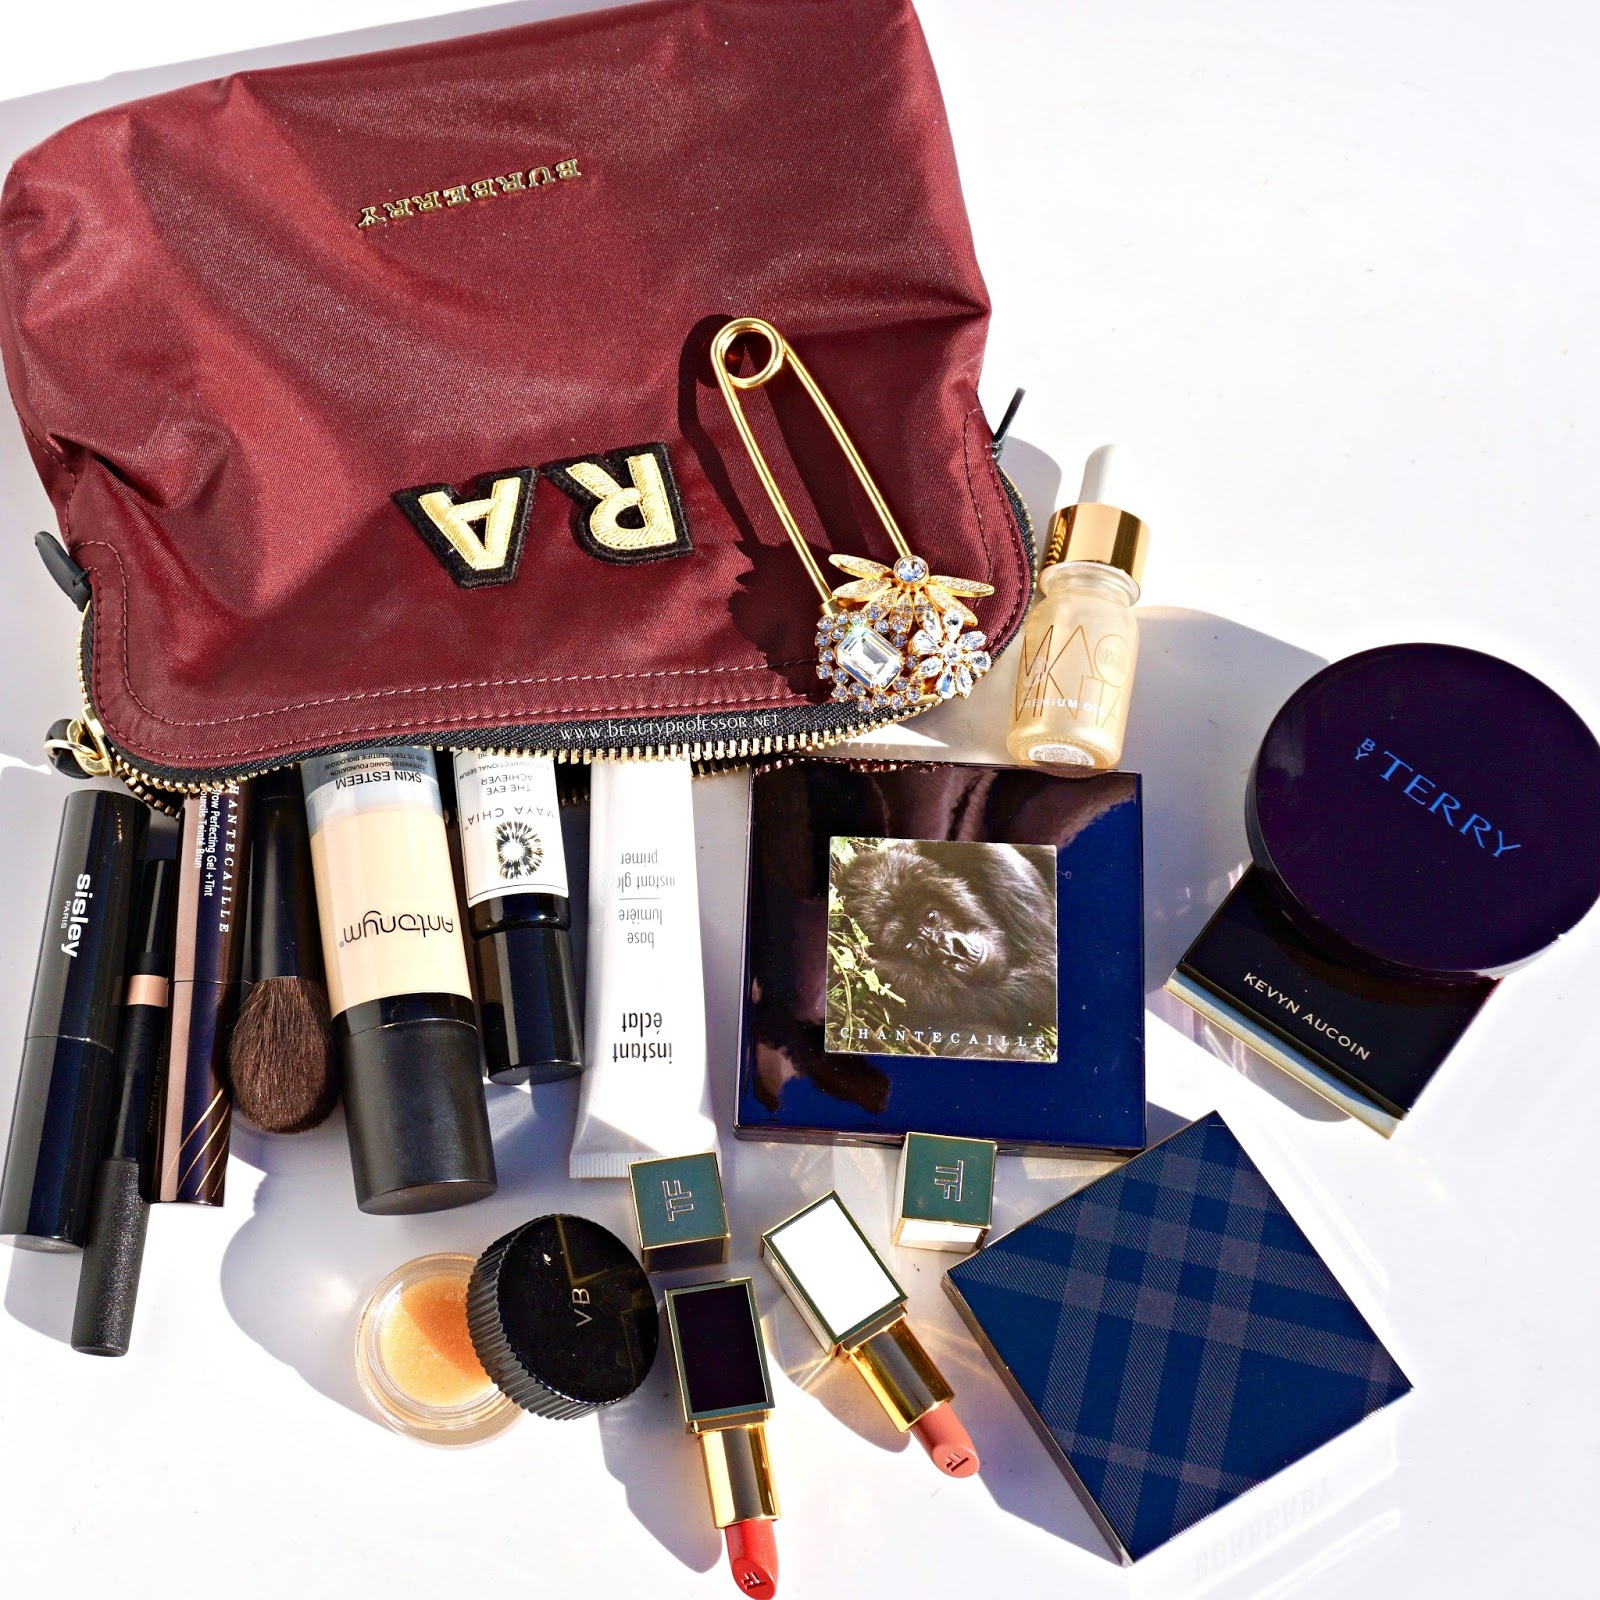 Video: My Shining Moment + A Current Makeup Bag Spill